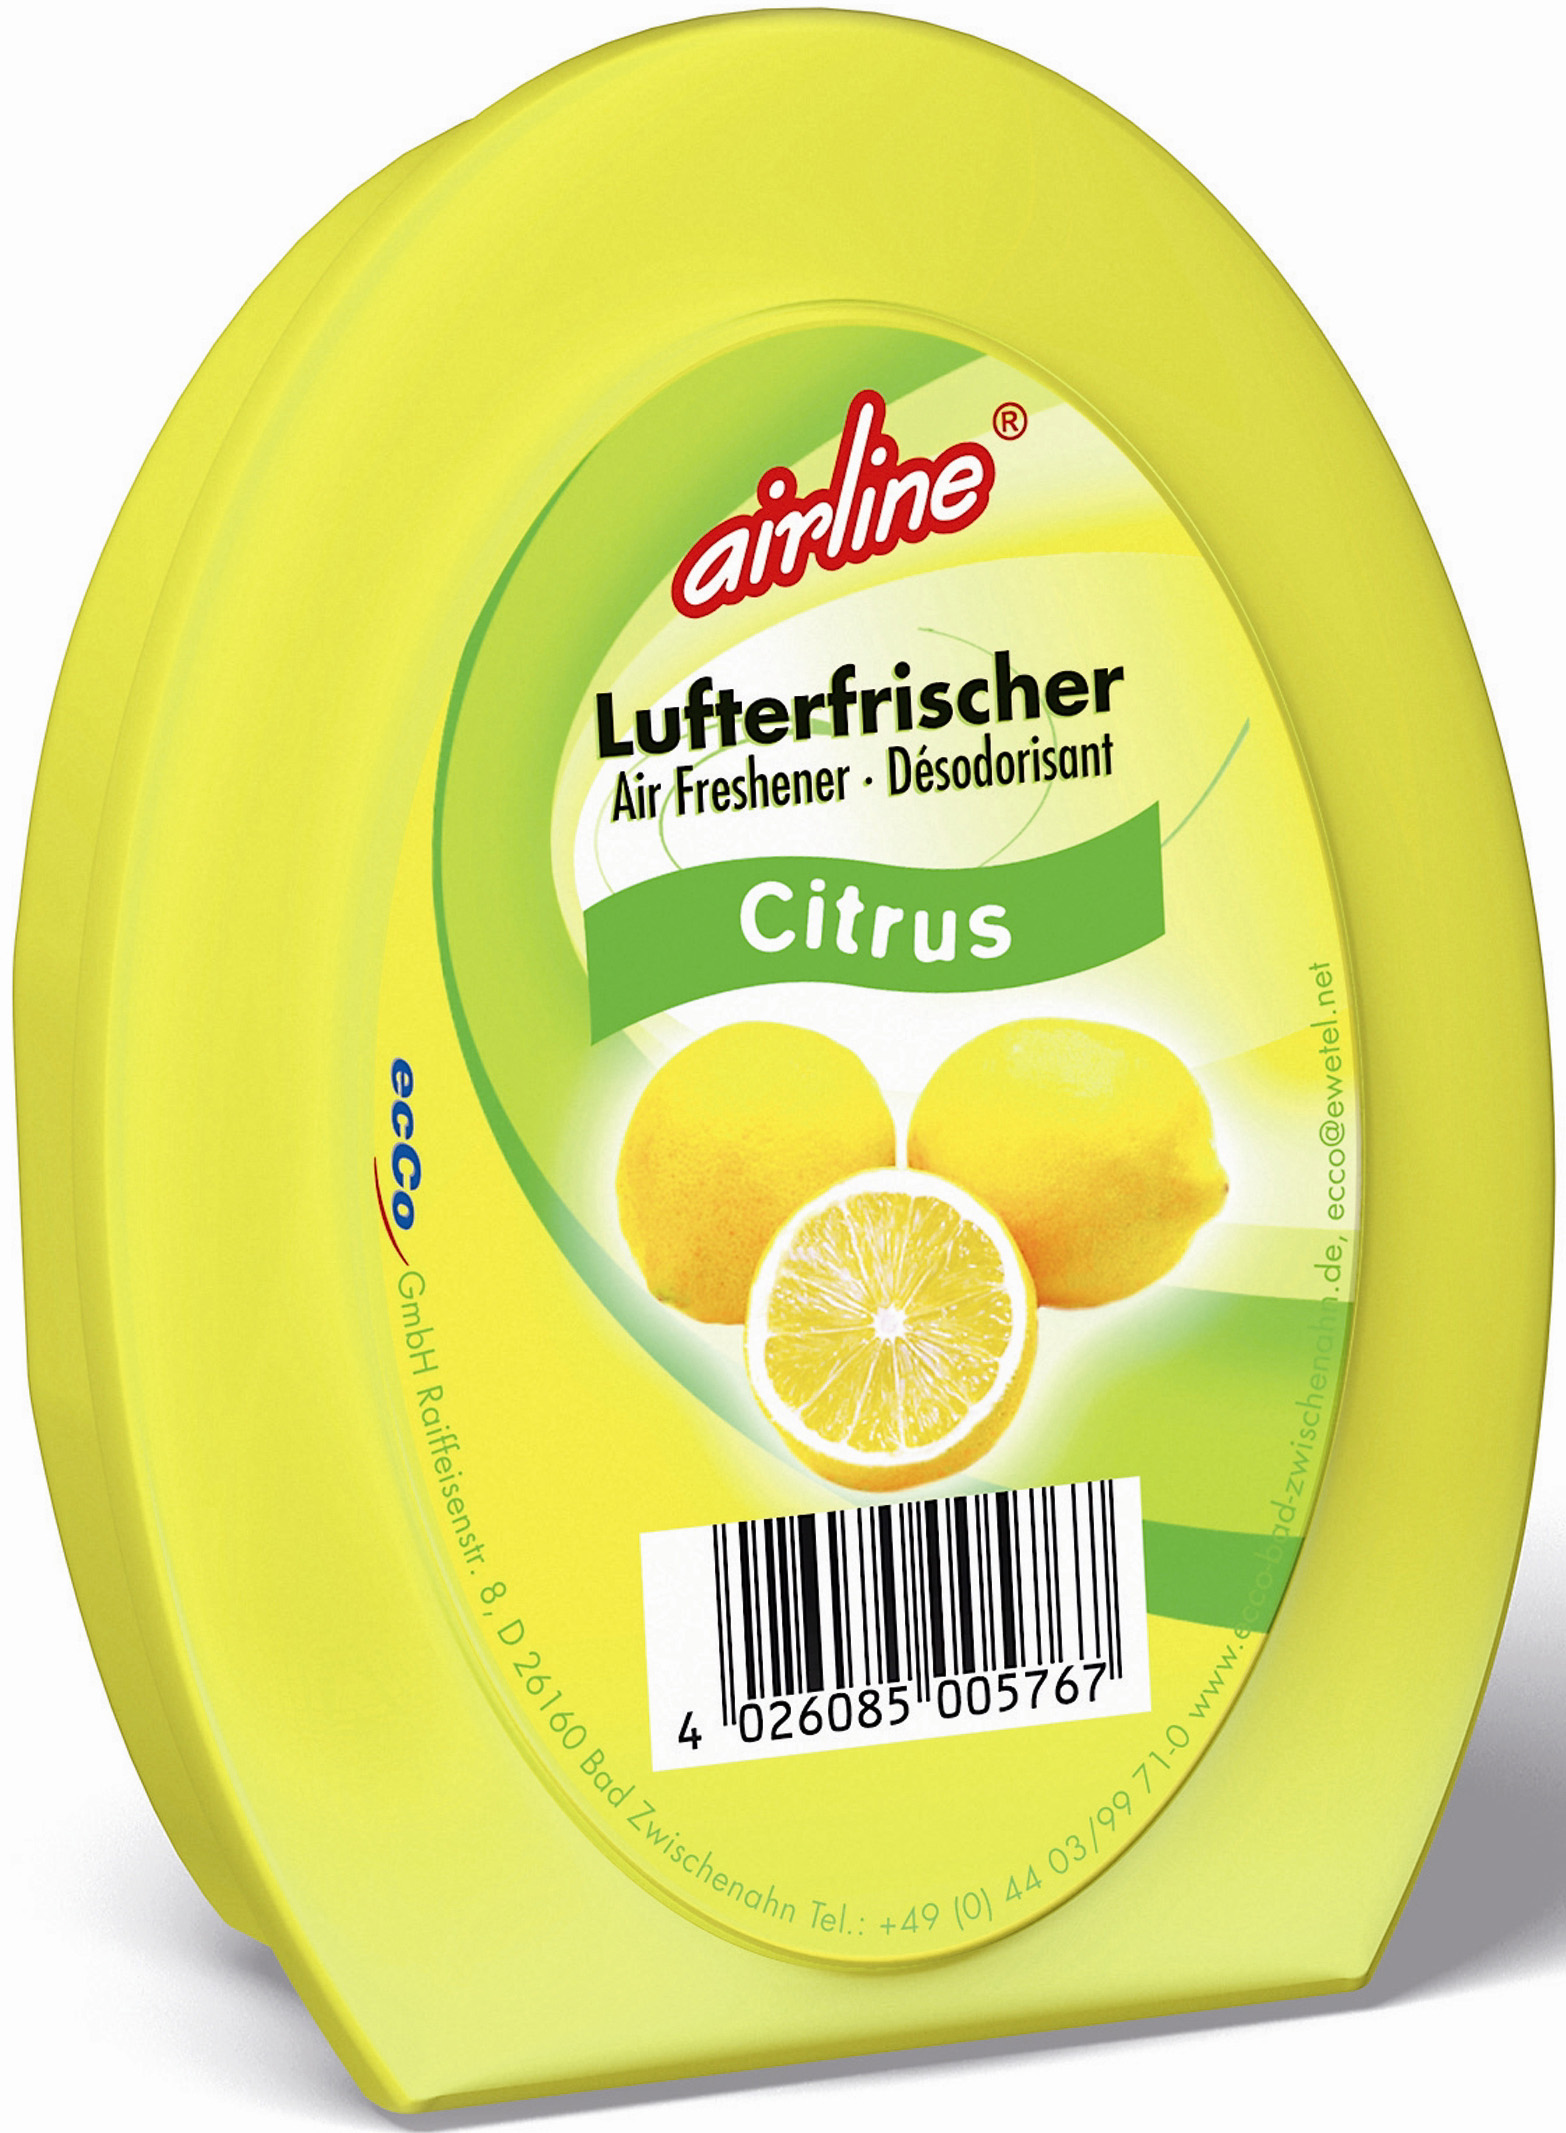 00576 - airline Duftgel 150 g - Citrus